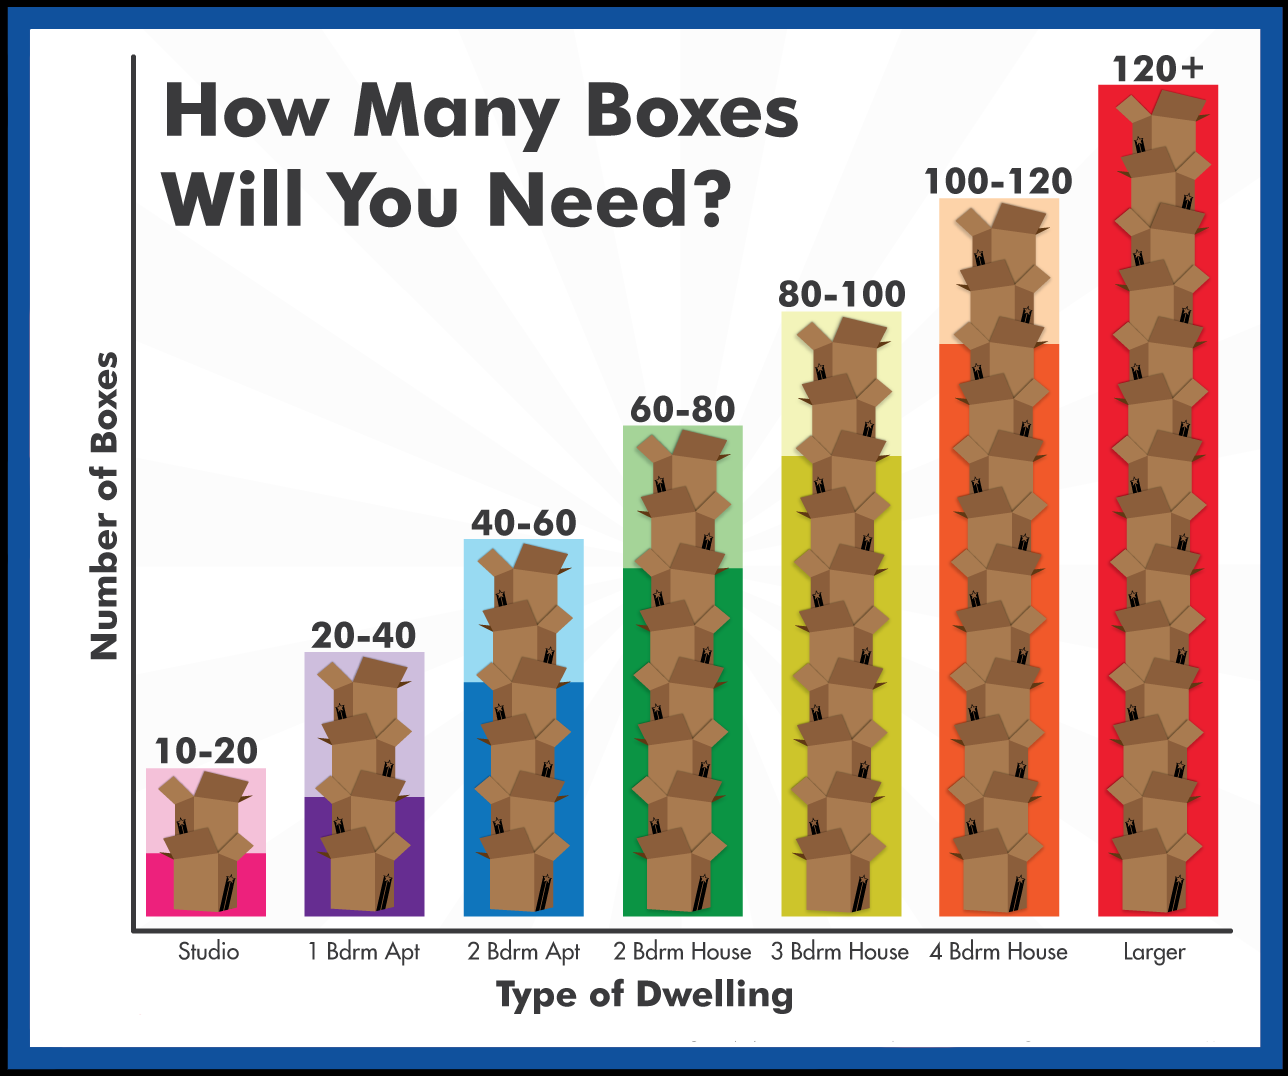 How Many Moving Boxes Will I Need?